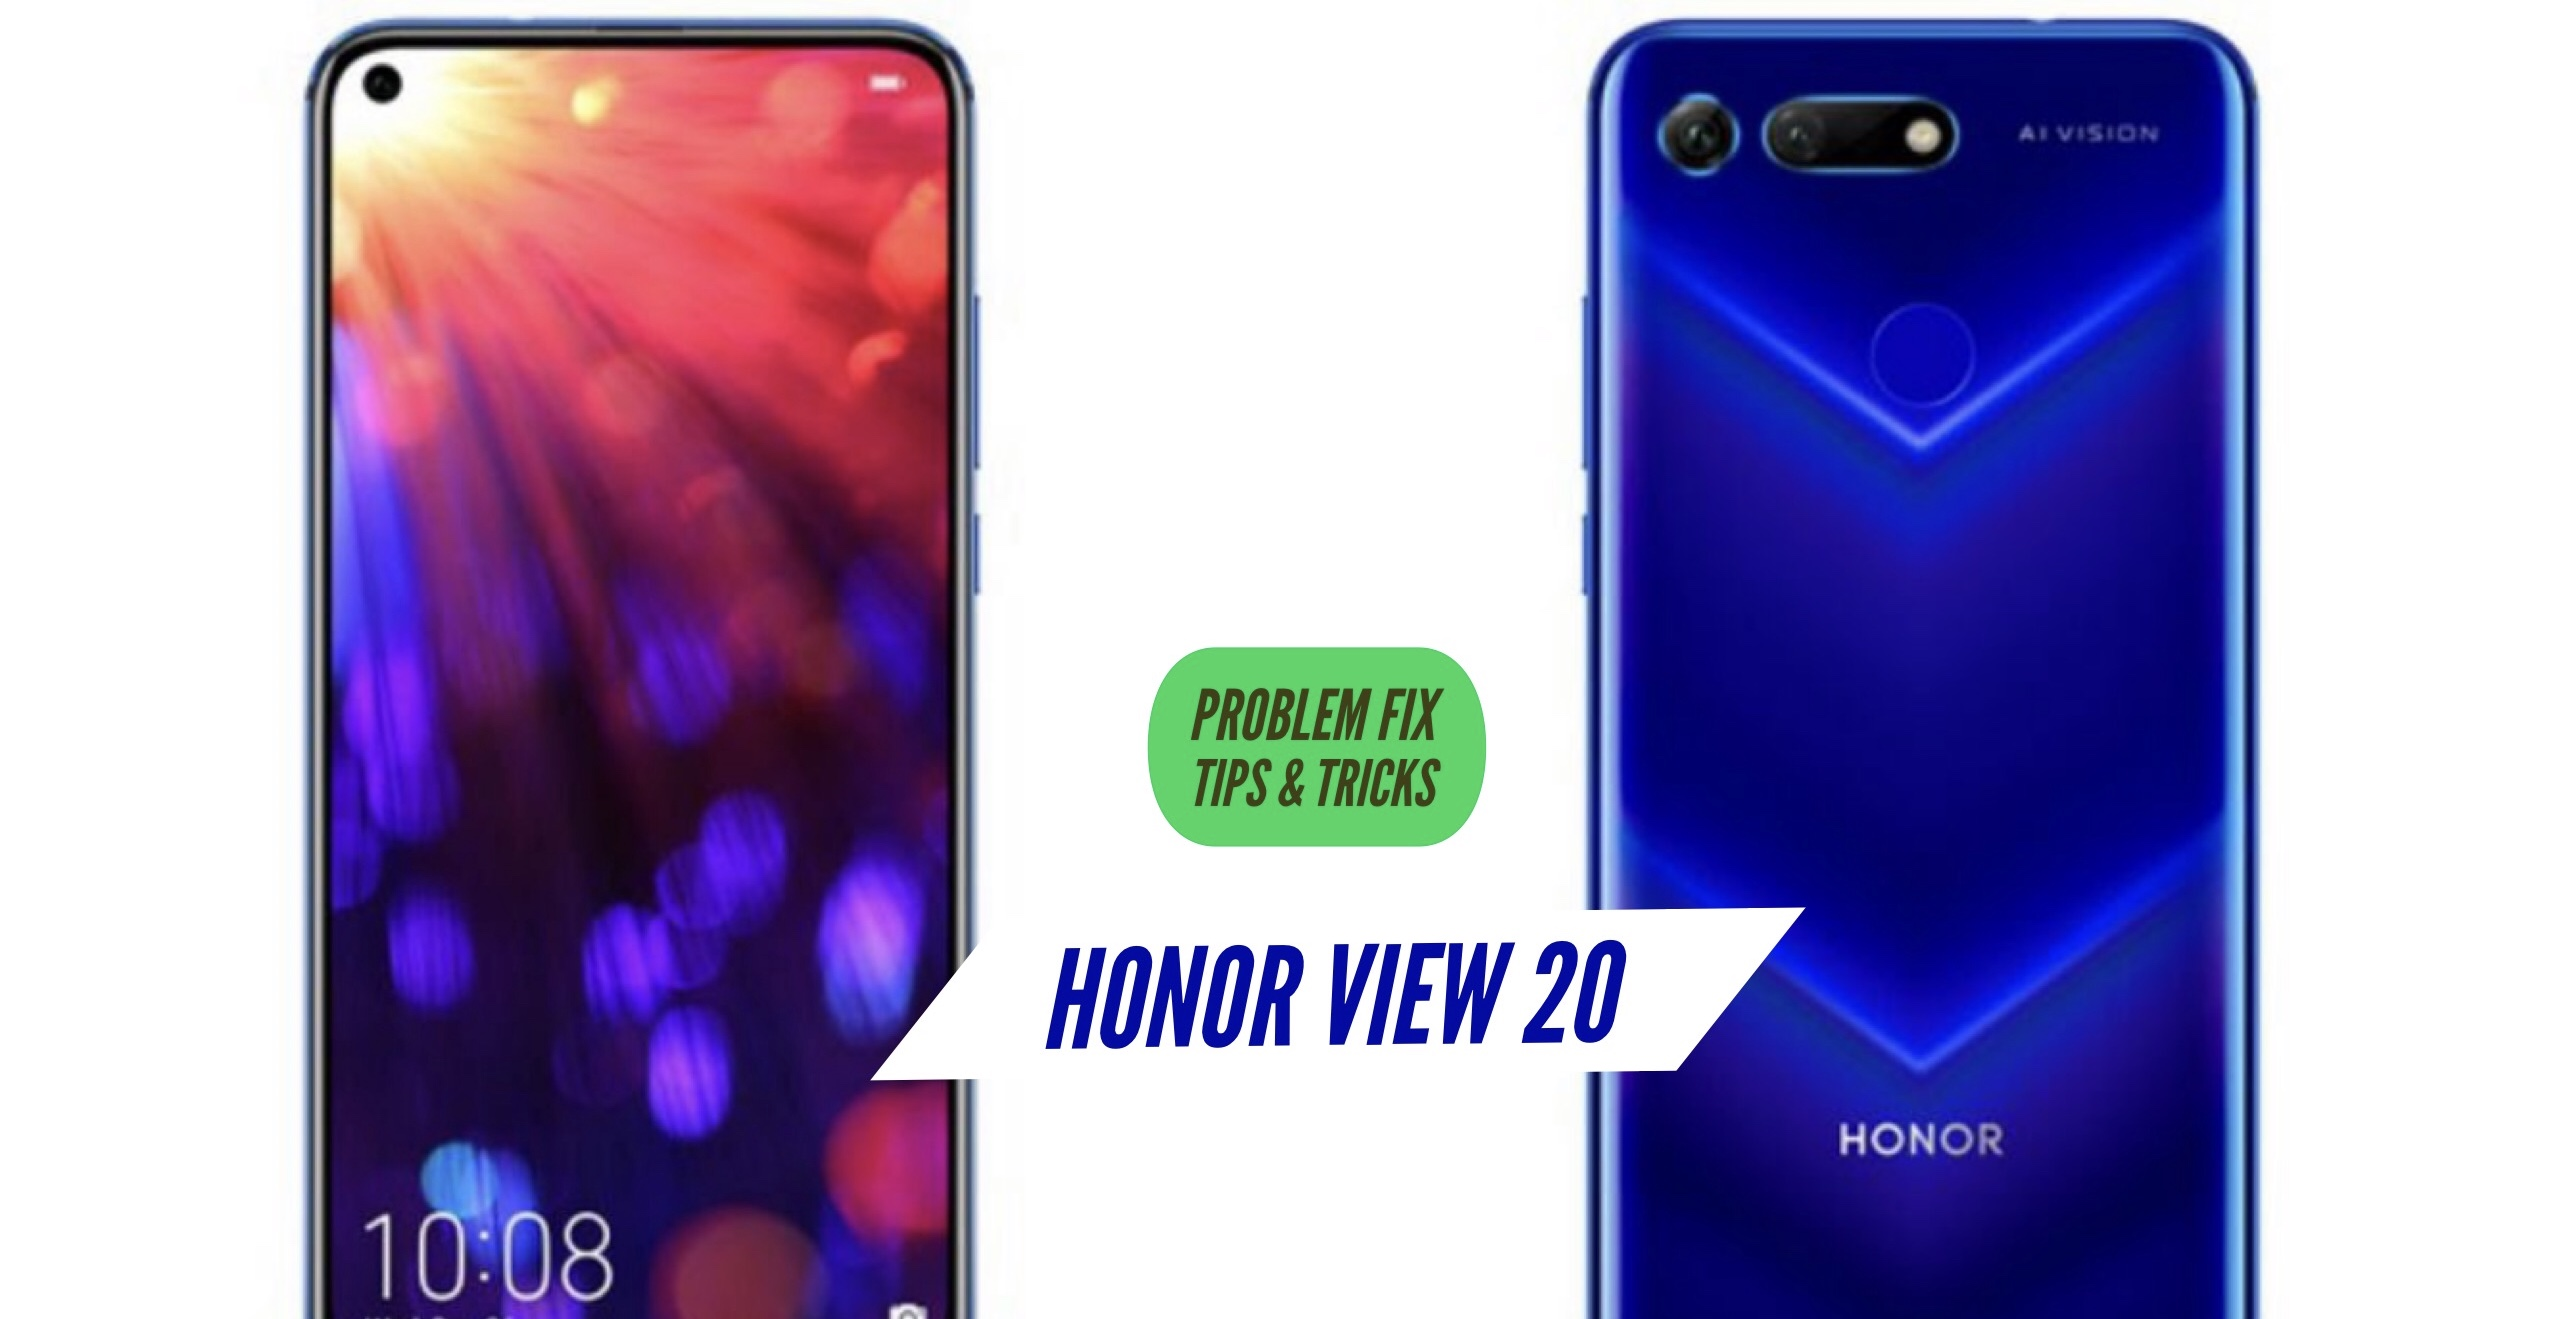 Honor View 20 Most Common Problems & Issues + Solution Fix